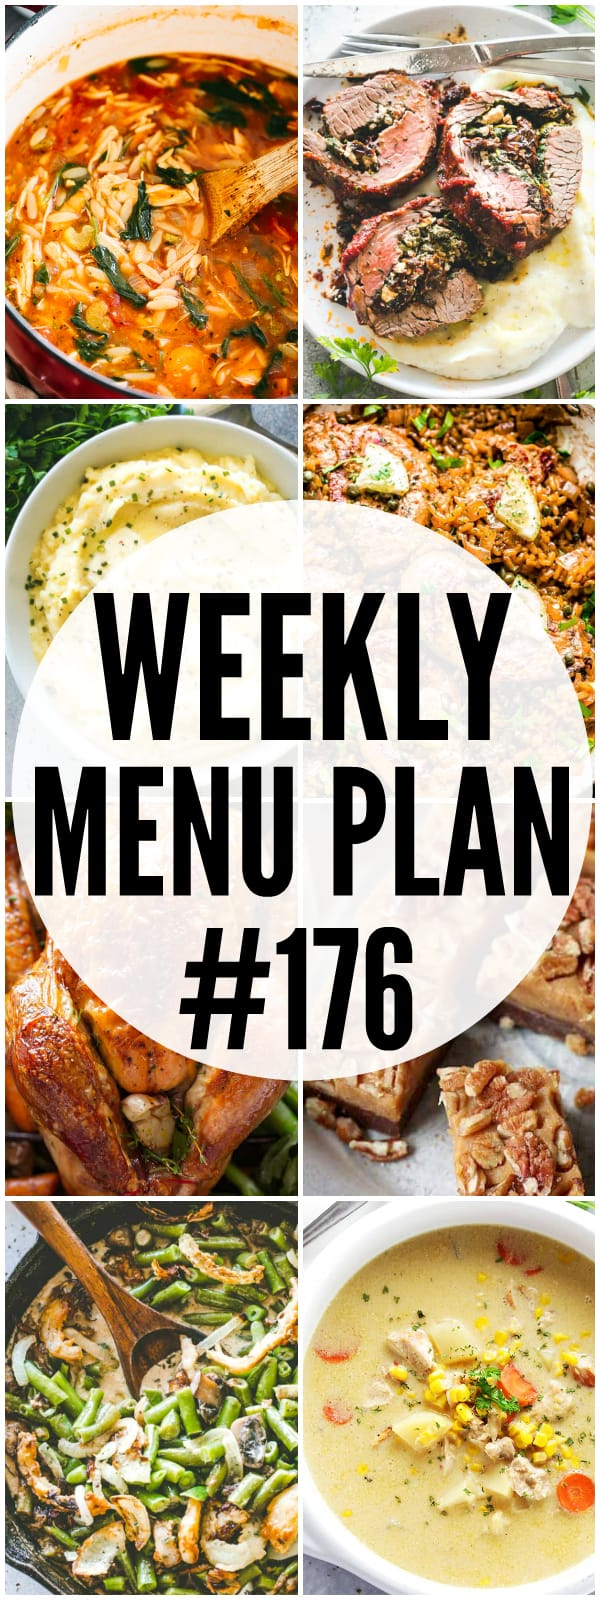 WEEKLY MENU PLAN (#176) - A delicious collection of dinner, side dish and dessert recipes to help you plan your weekly menu and make life easier for you!